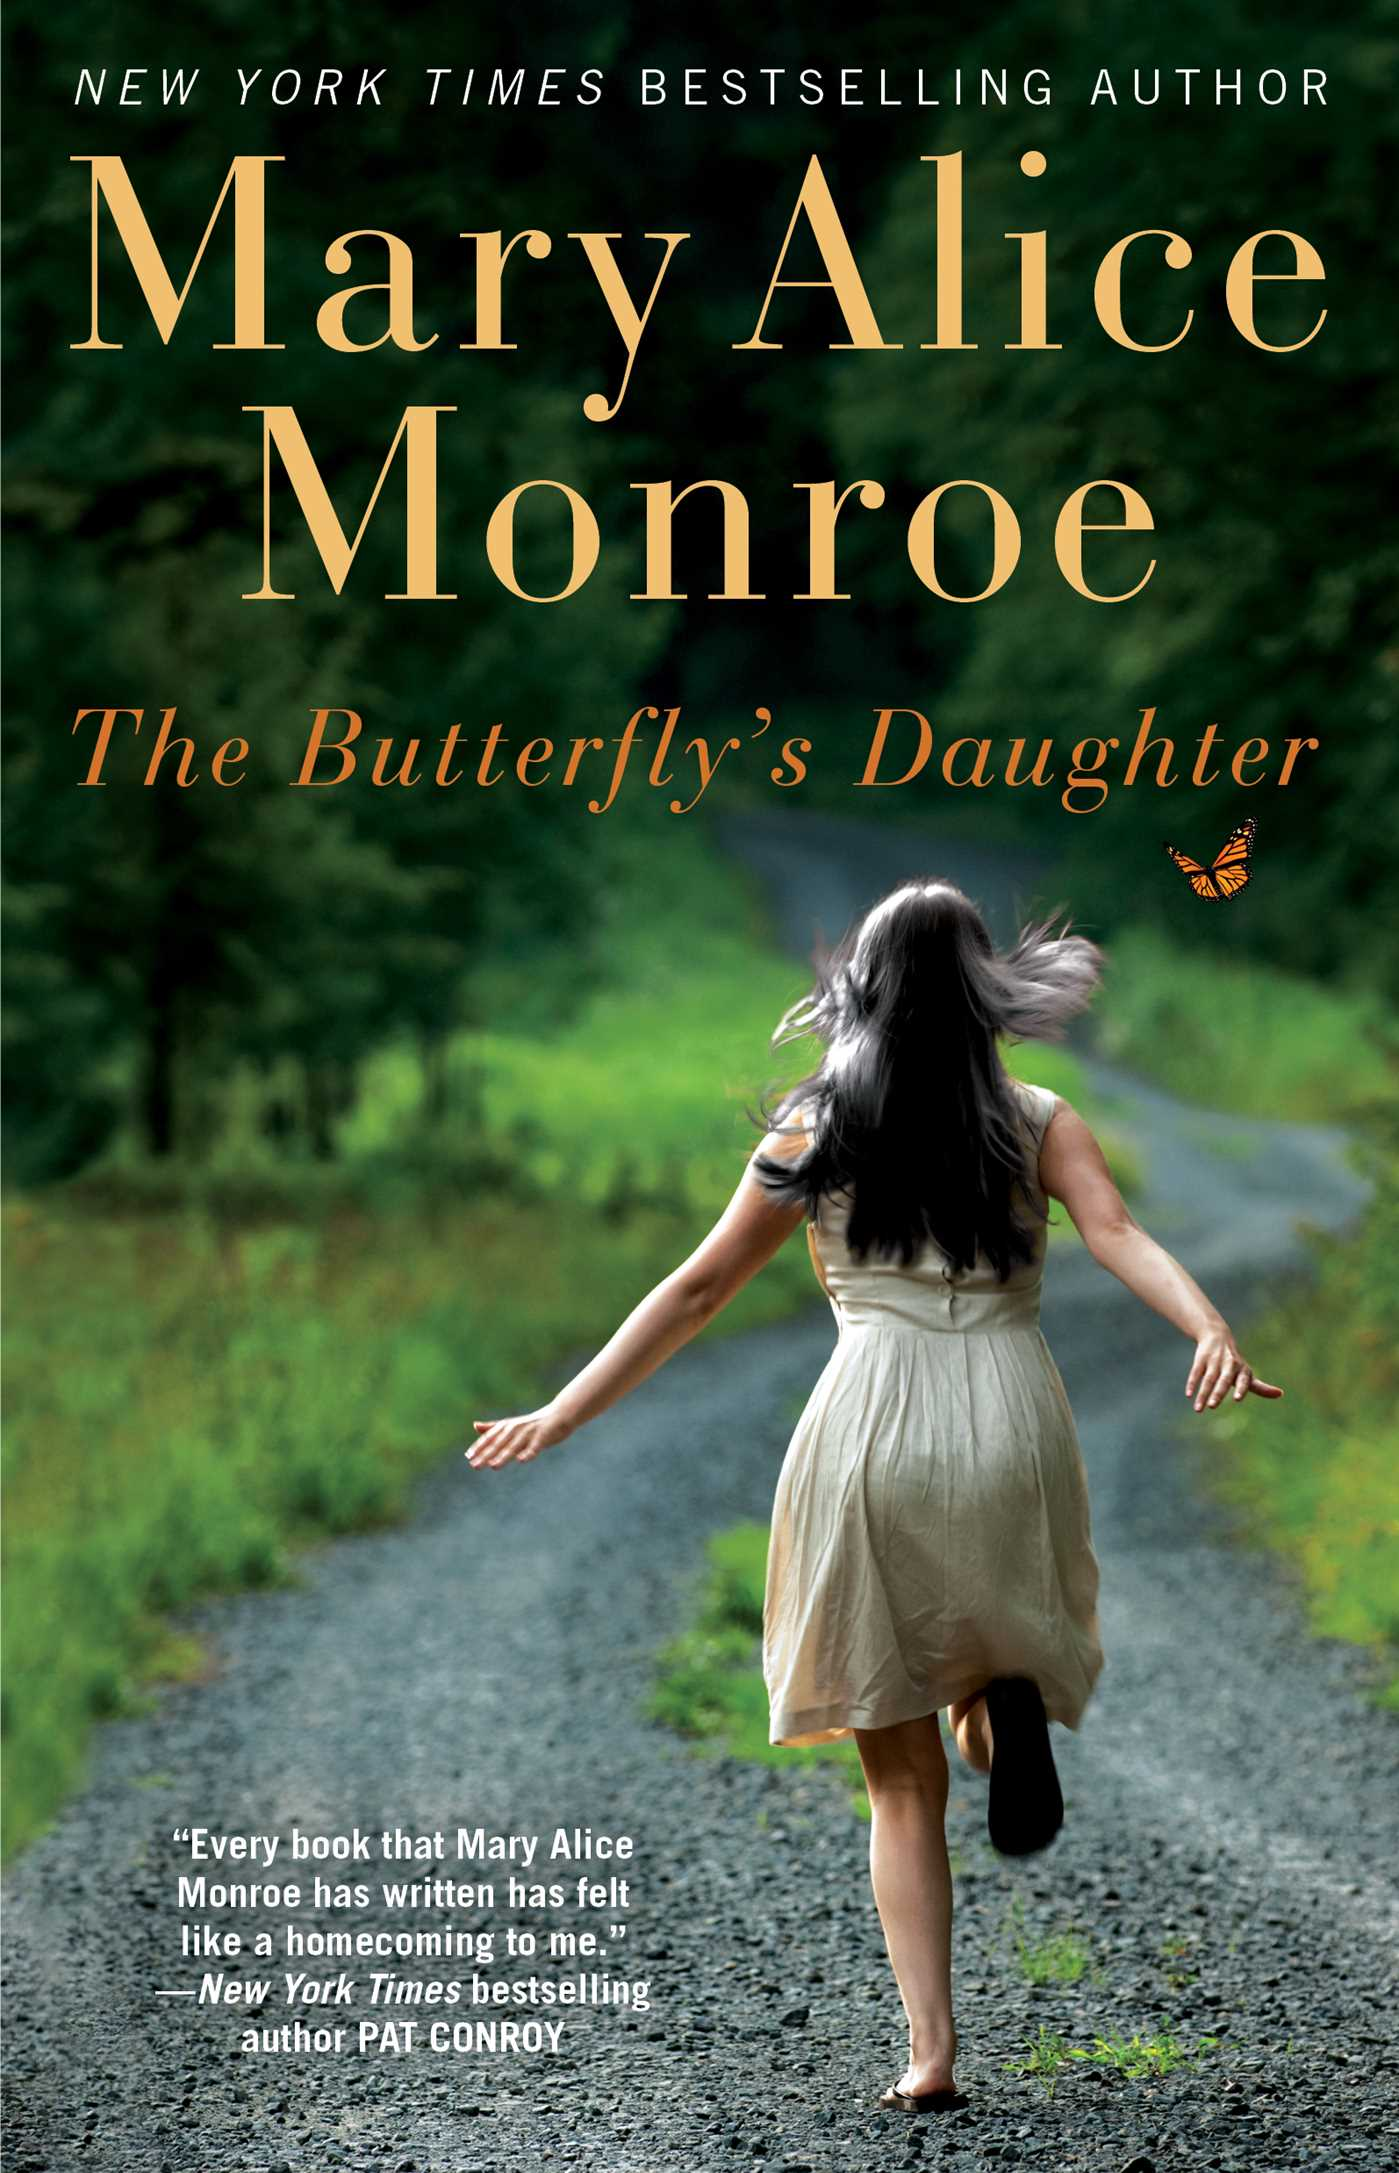 Butterflys-daughter-9781439170687_hr